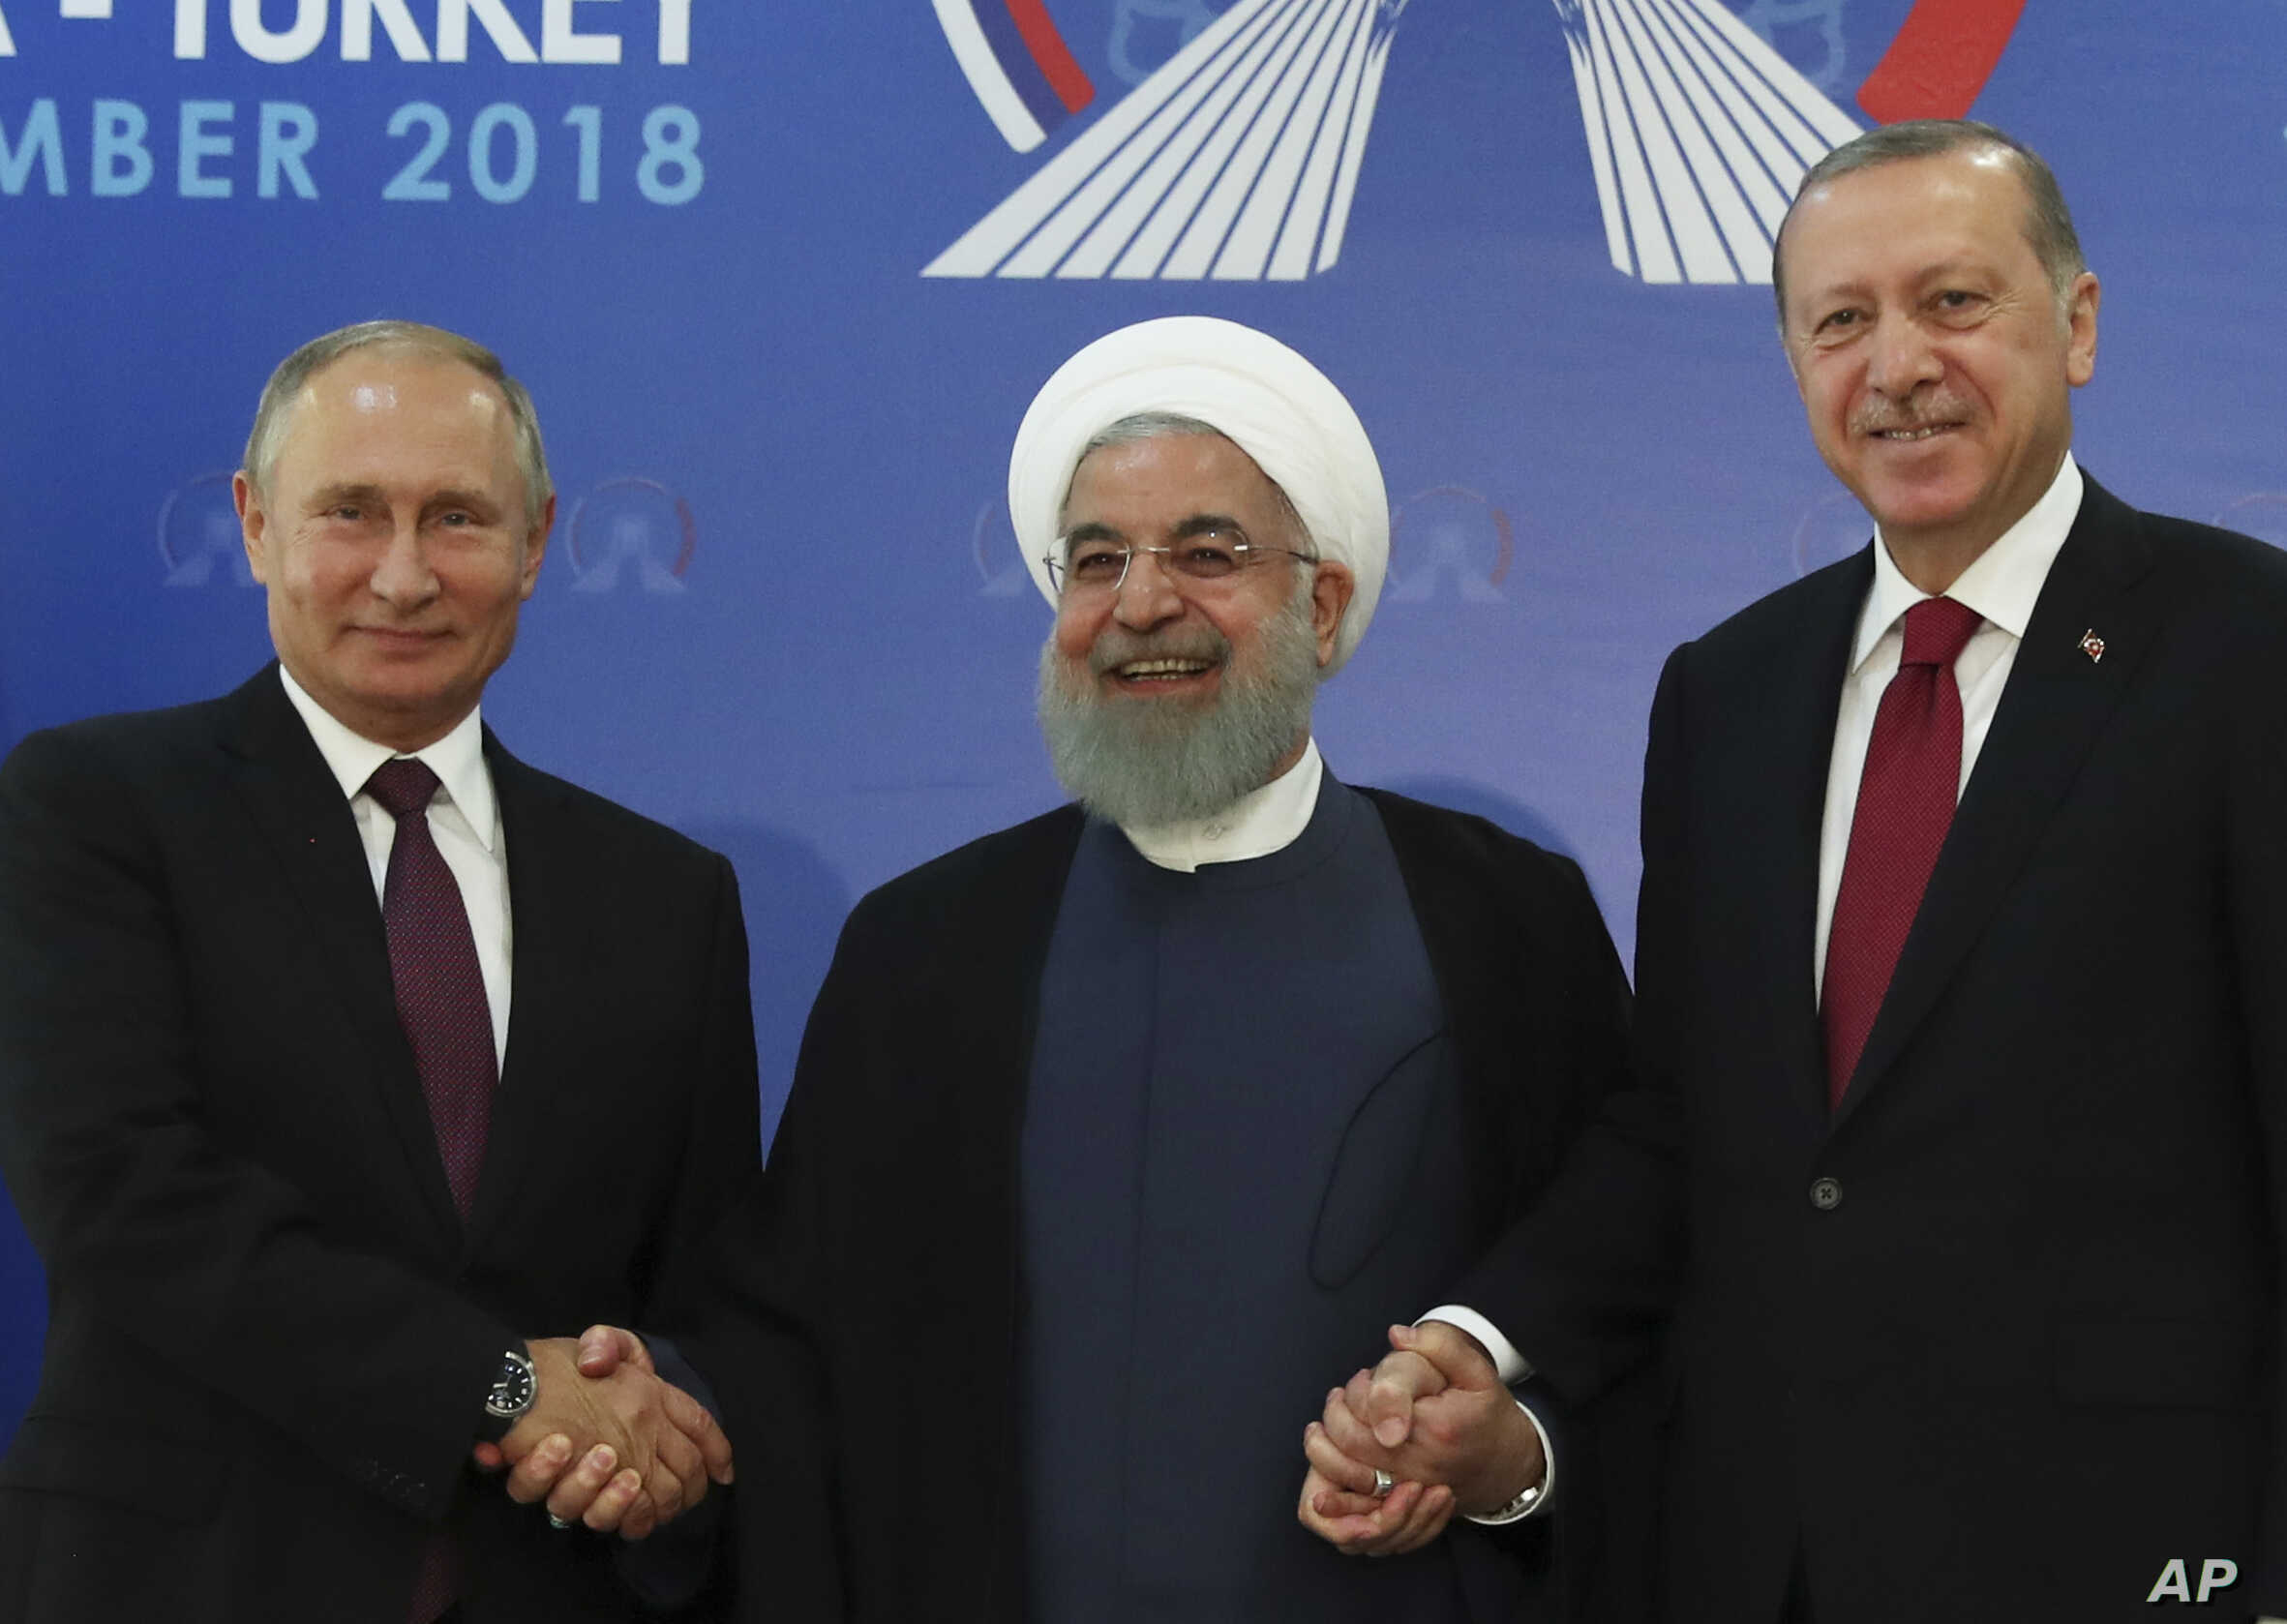 Iran's President Hassan Rouhani, center, flanked by Russia's President Vladimir Putin, left, and Turkey's President Recep Tayyip Erdogan, pose for photographs in Tehran, Iran, ahead of their summit to discuss Syria, Sept. 7, 2018.